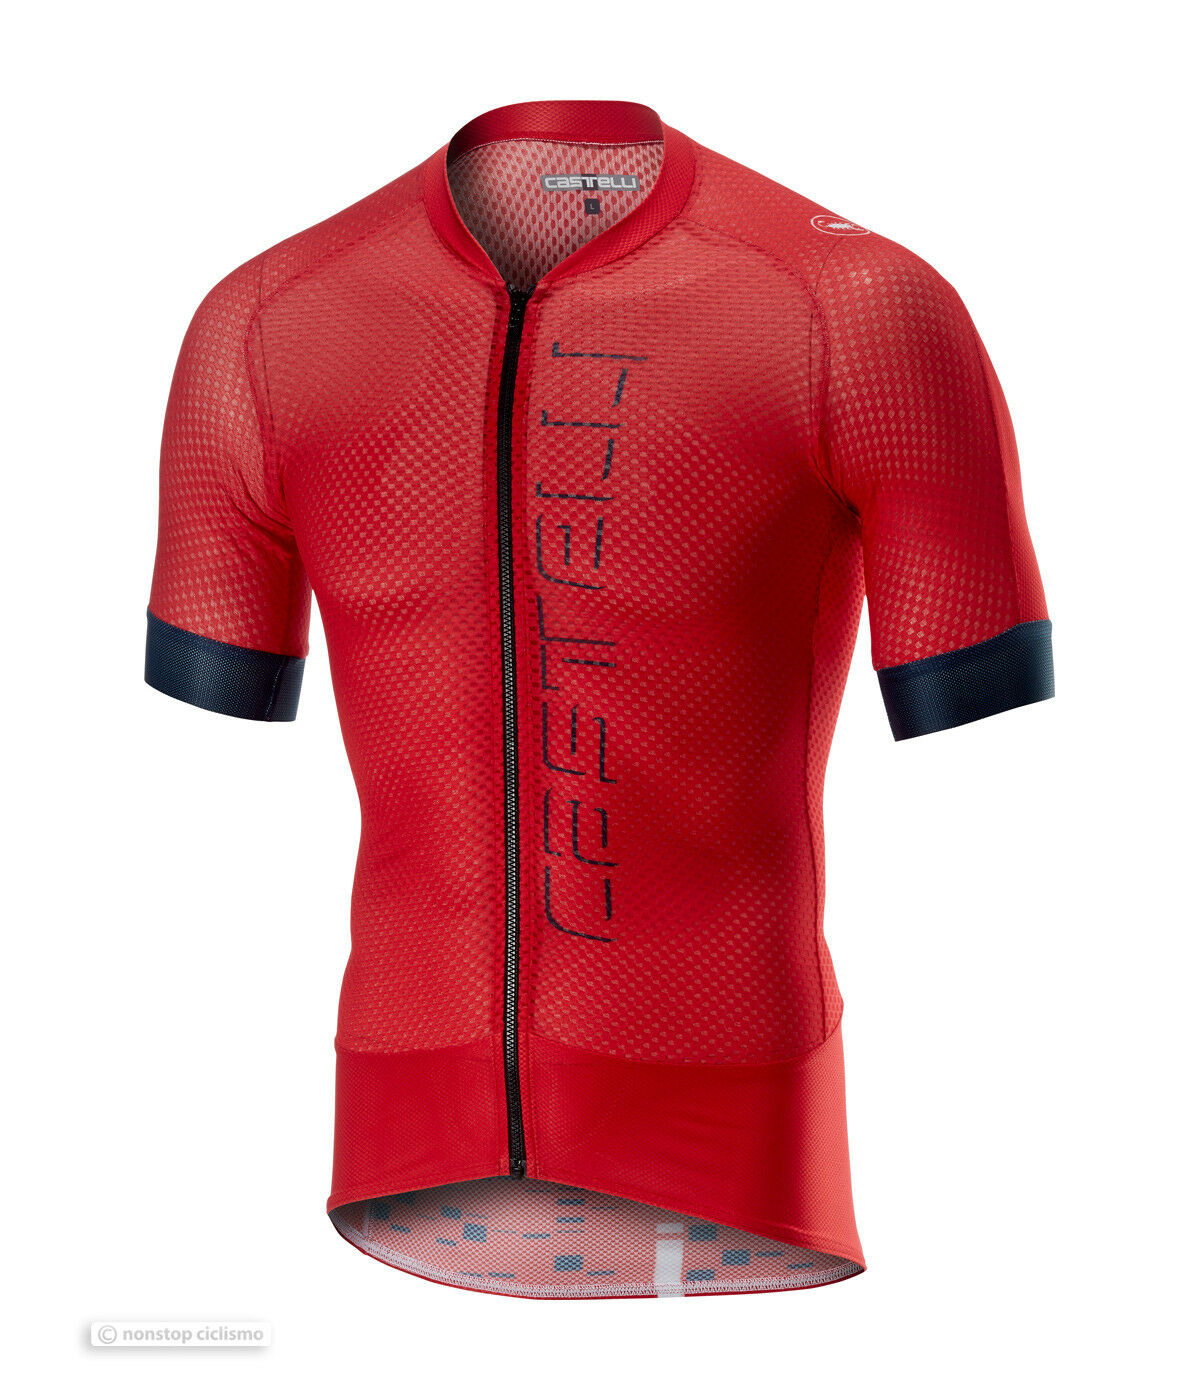 NEW 2019 Castelli CLIMBER'S 2.0 Full Zip Cycling Jersey   RED